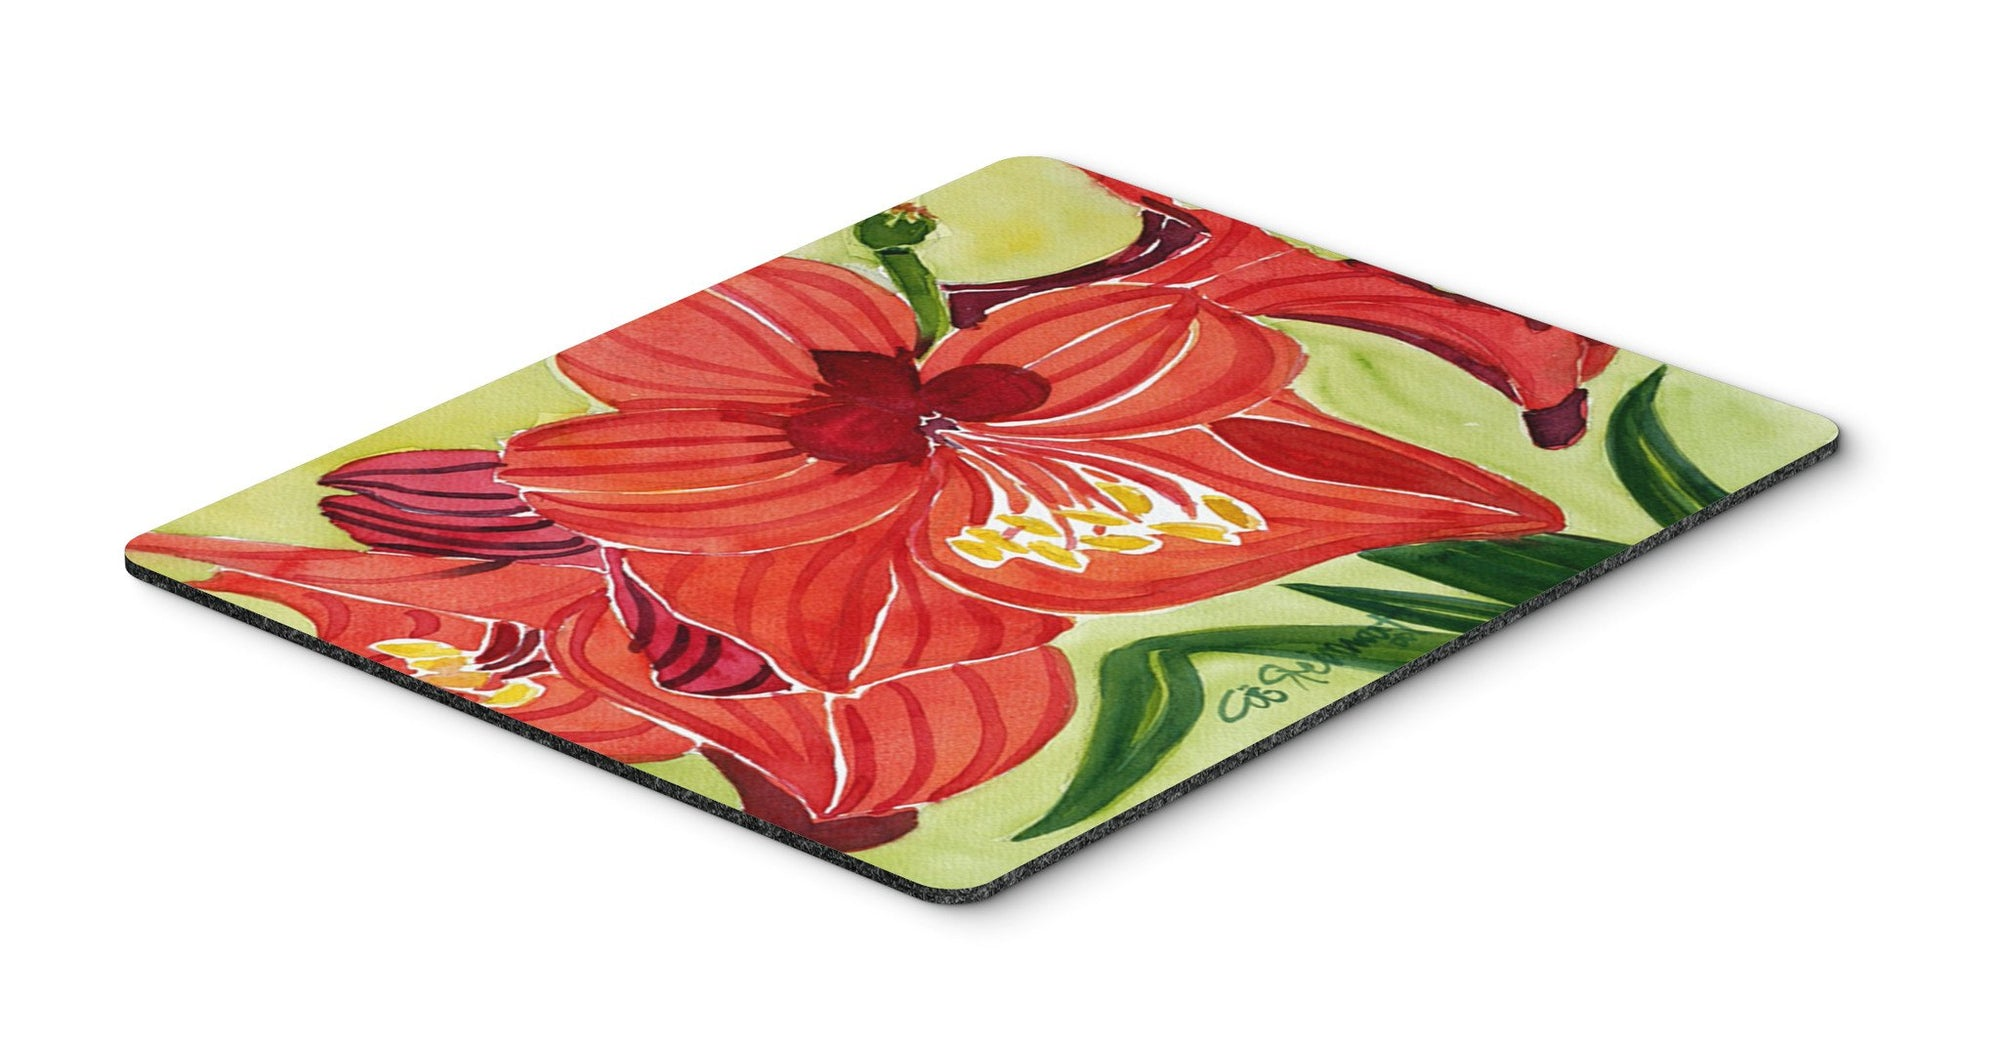 Buy this Flower - Amaryllis Mouse pad, hot pad, or trivet